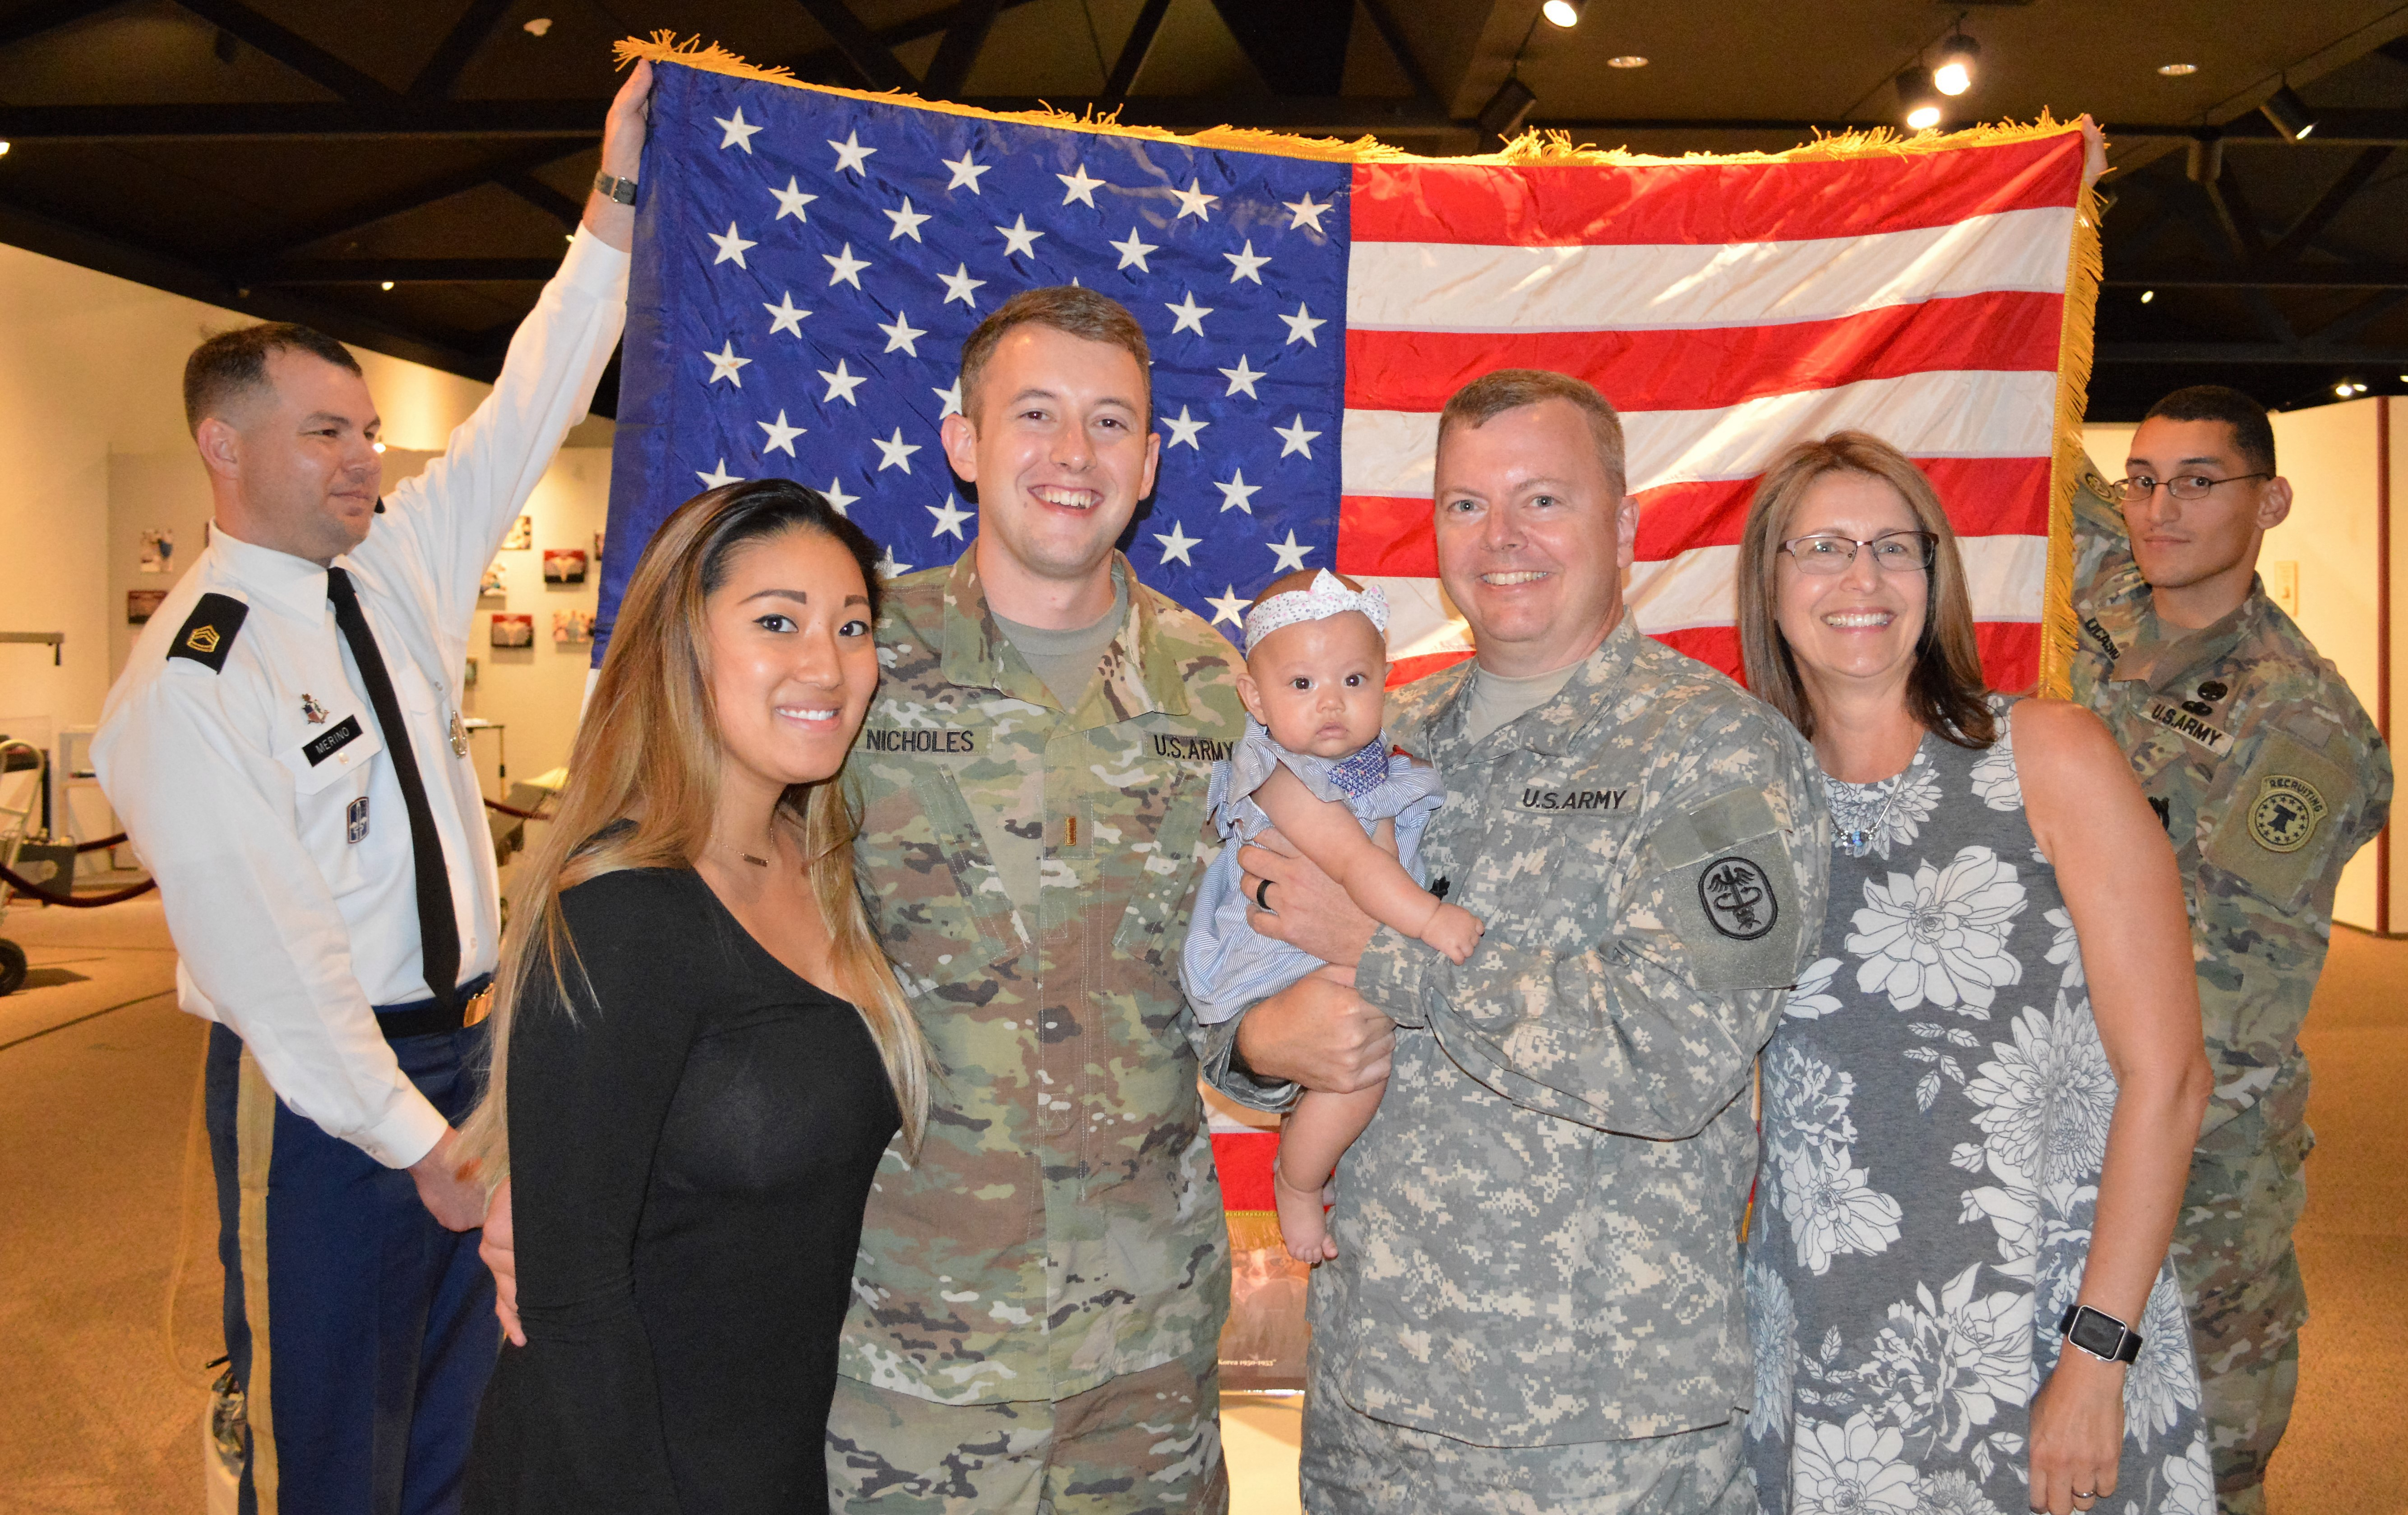 ER physician returns to Army service following son's lead